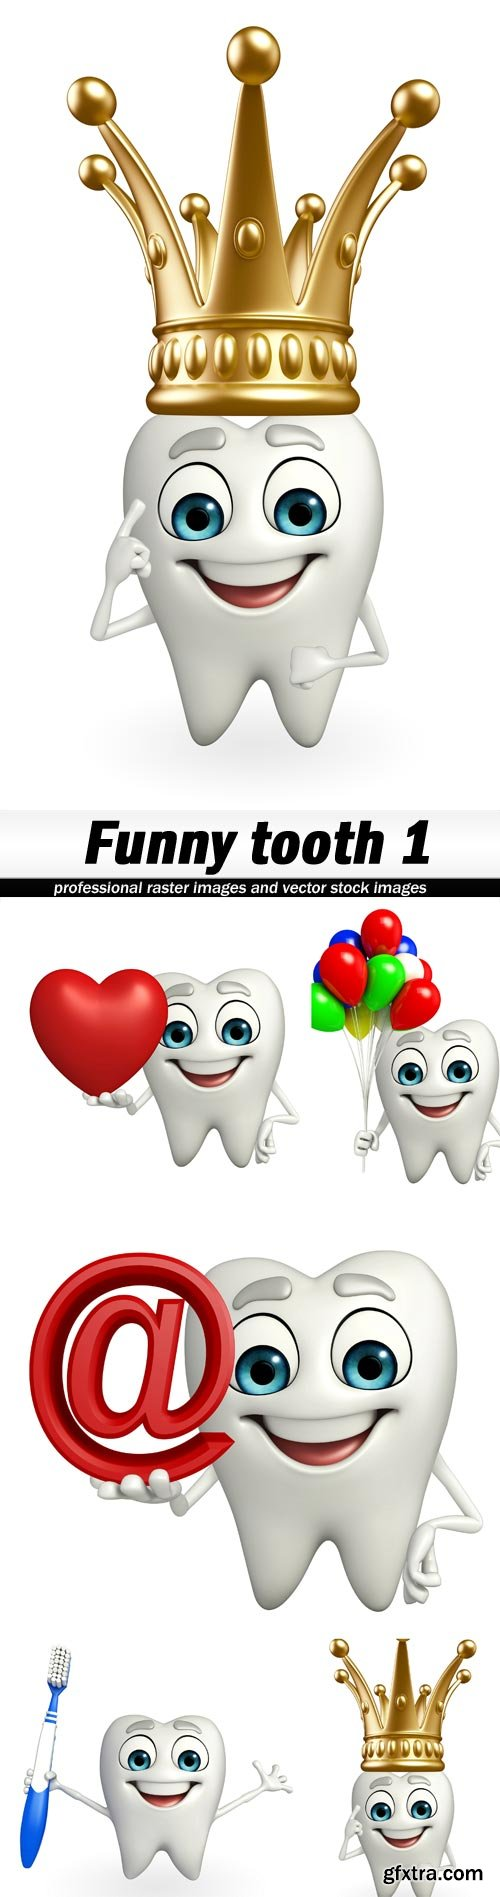 Funny tooth 1 - 5 UHQ JPEG